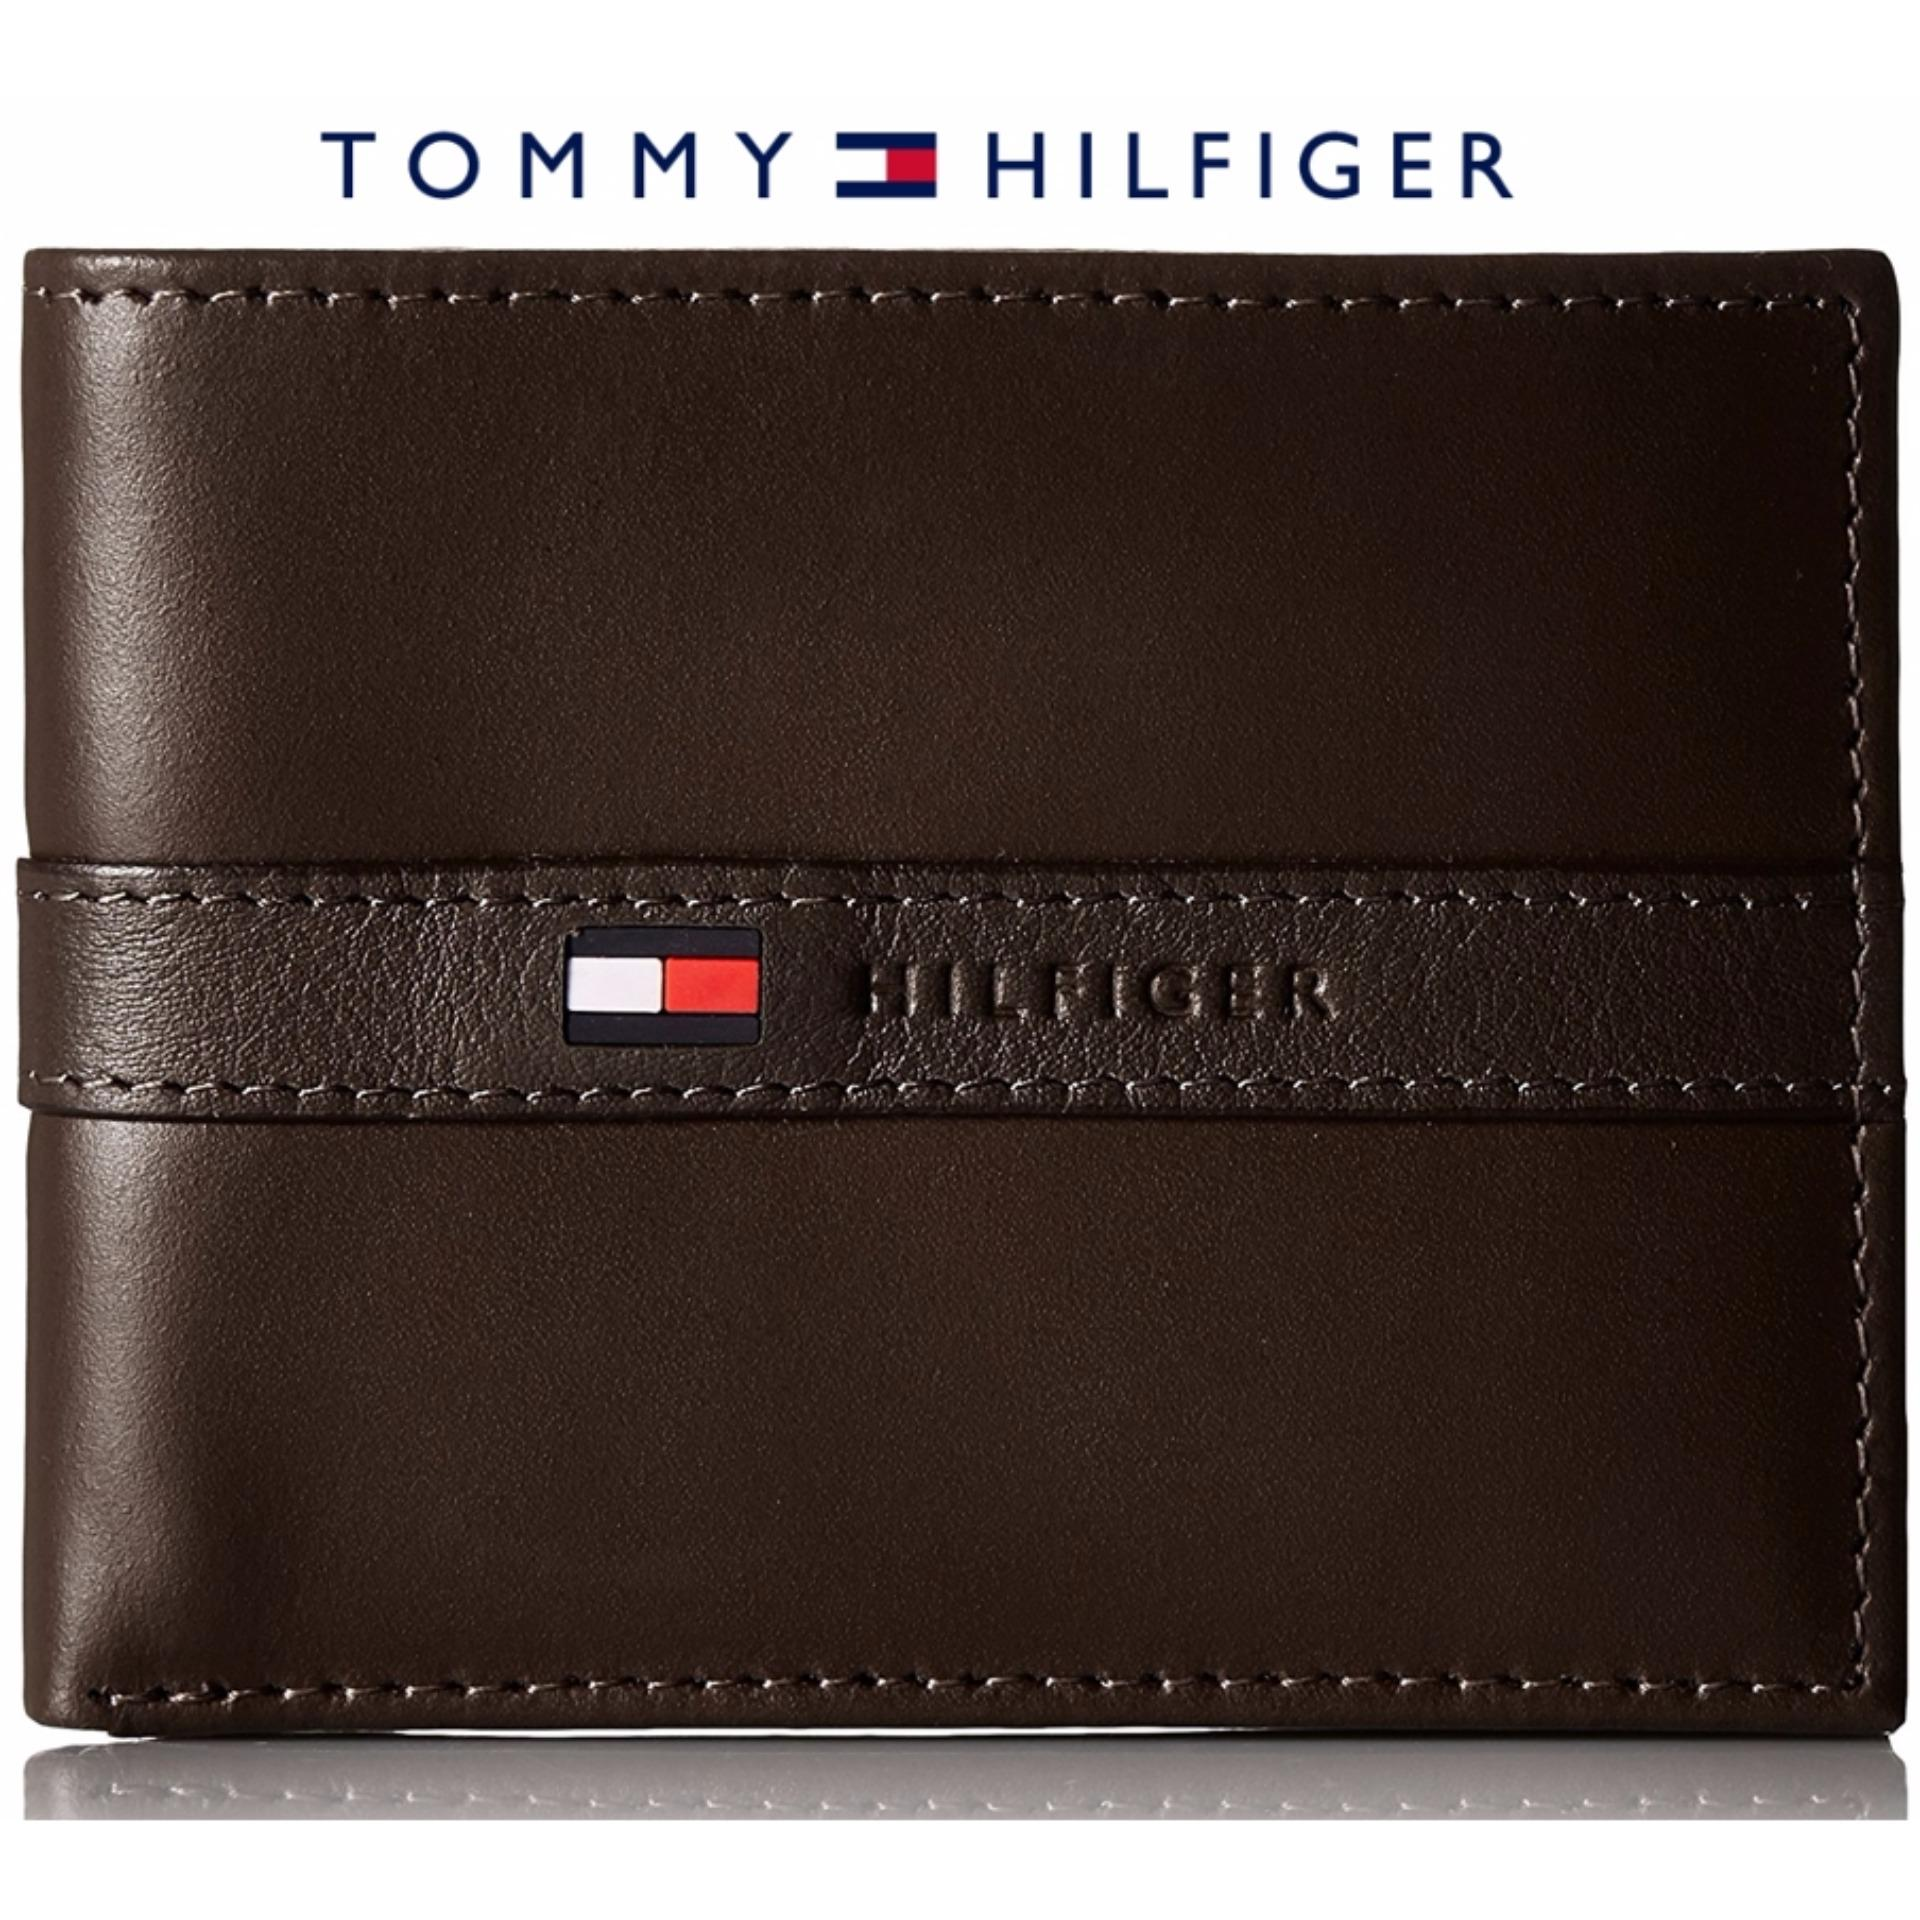 cheaper 7177a 988fa Tommy Hilfiger Men's Ranger Leather Passcase Wallet with Removable Card  Case gift box (brown) Singapore